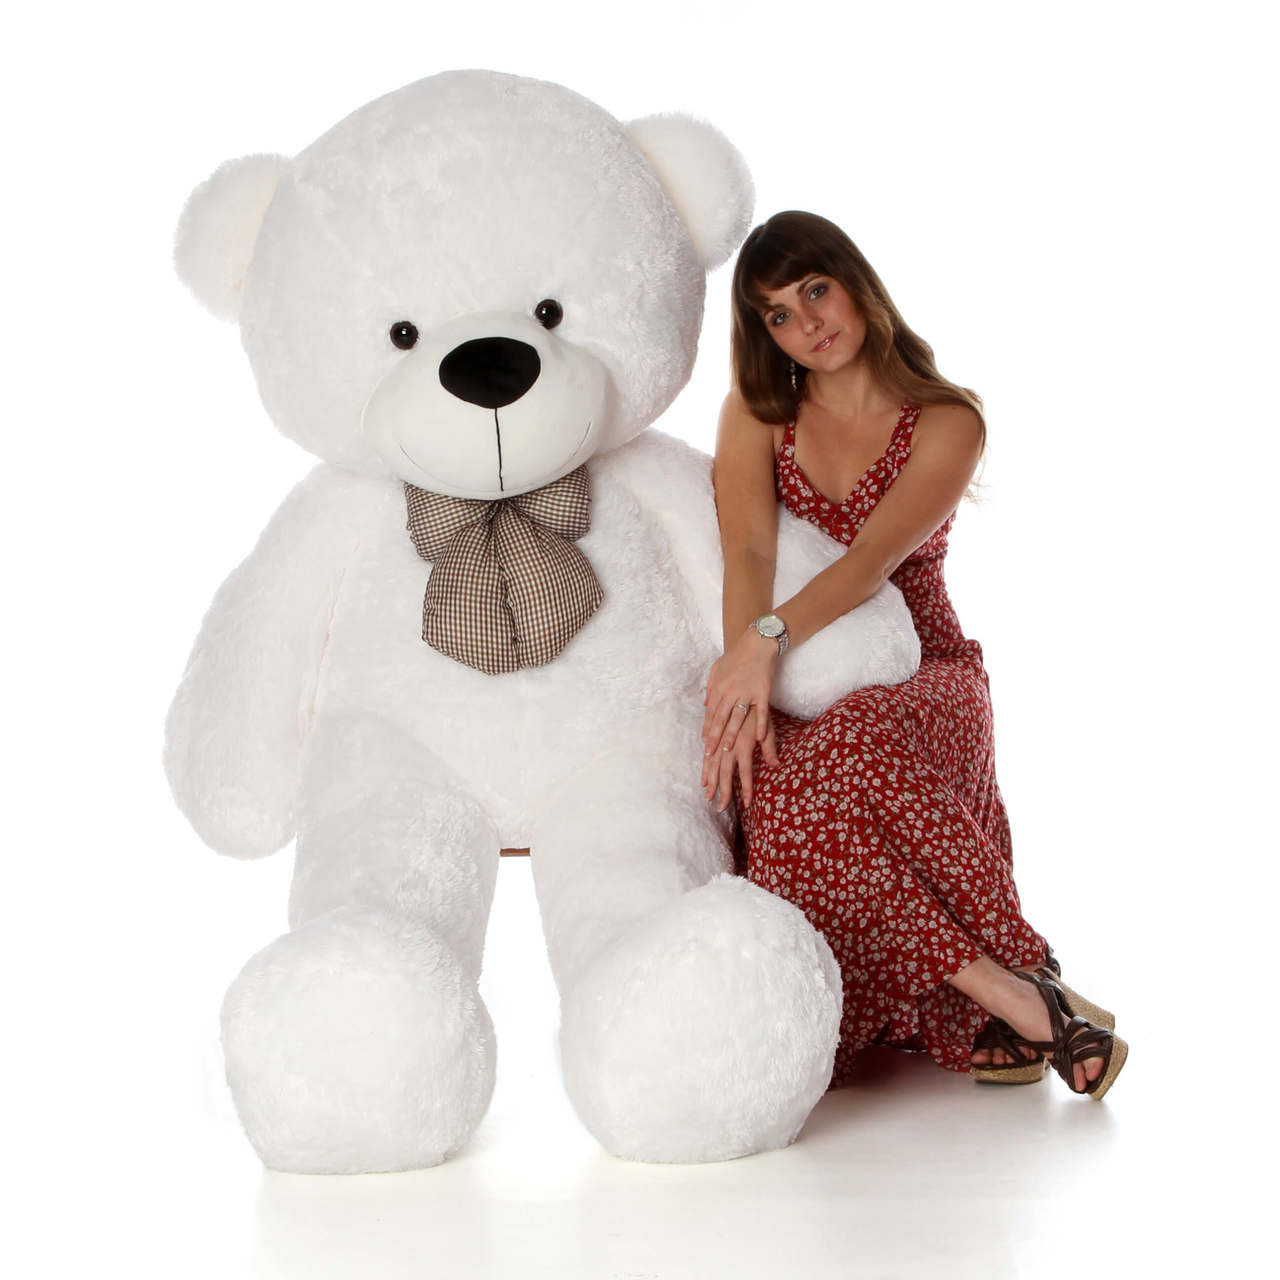 6ft Life Size Coco Cuddles White Teddy Bear